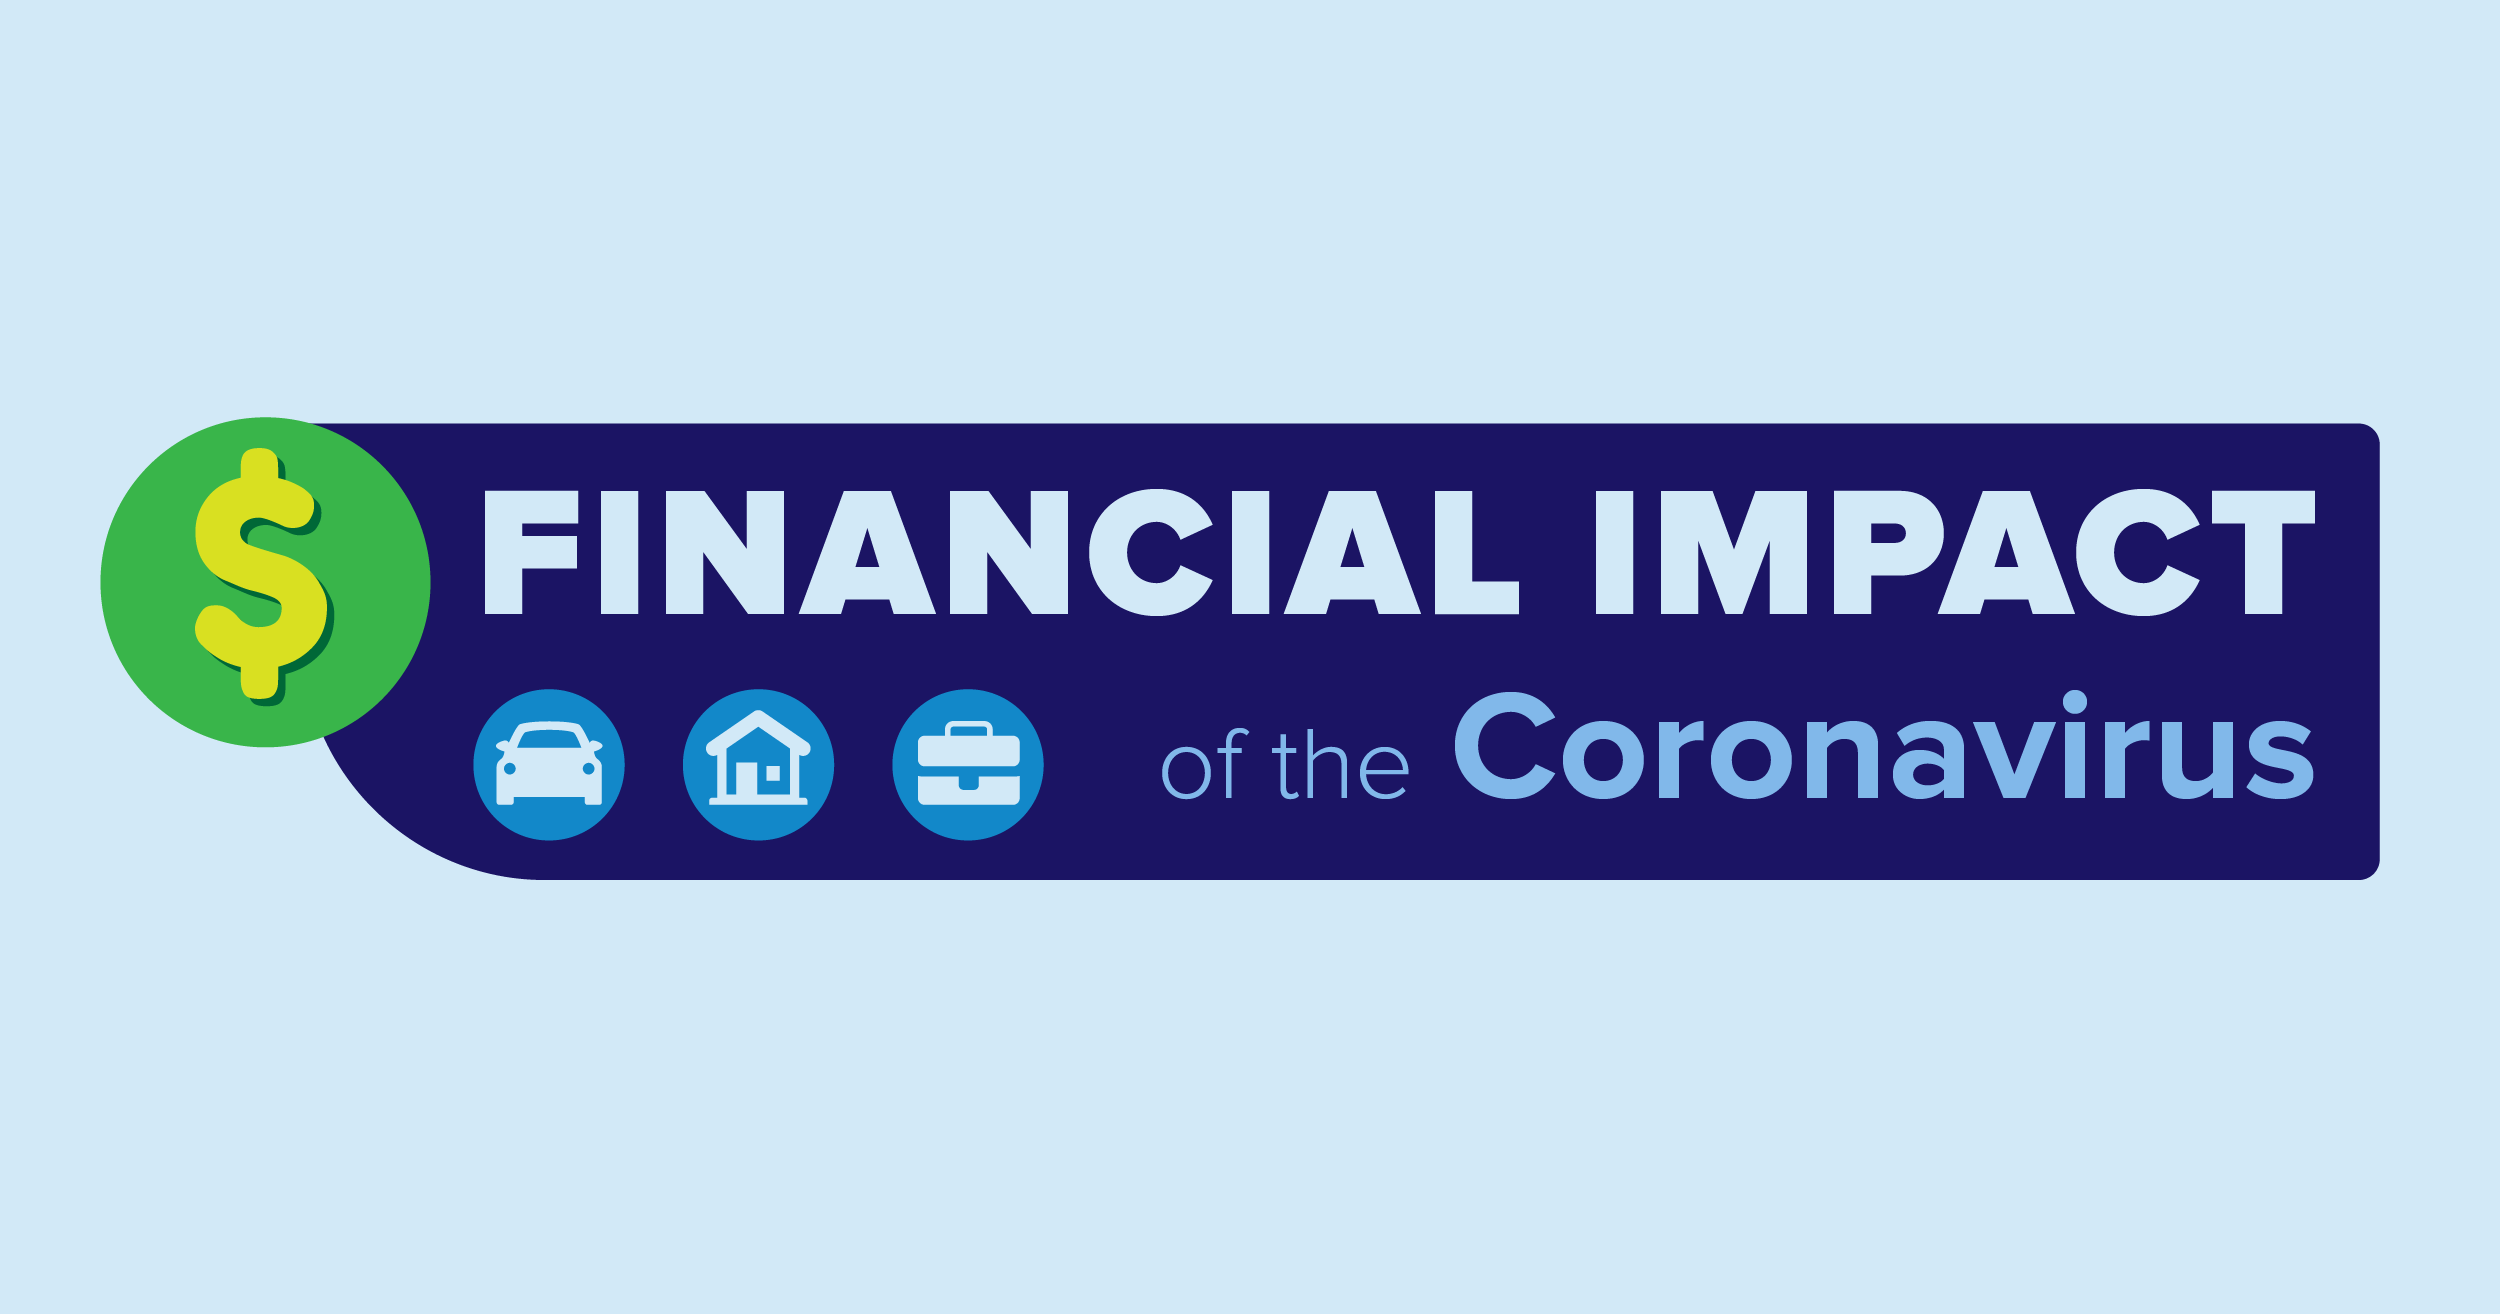 financial impact because of the Coronavirus